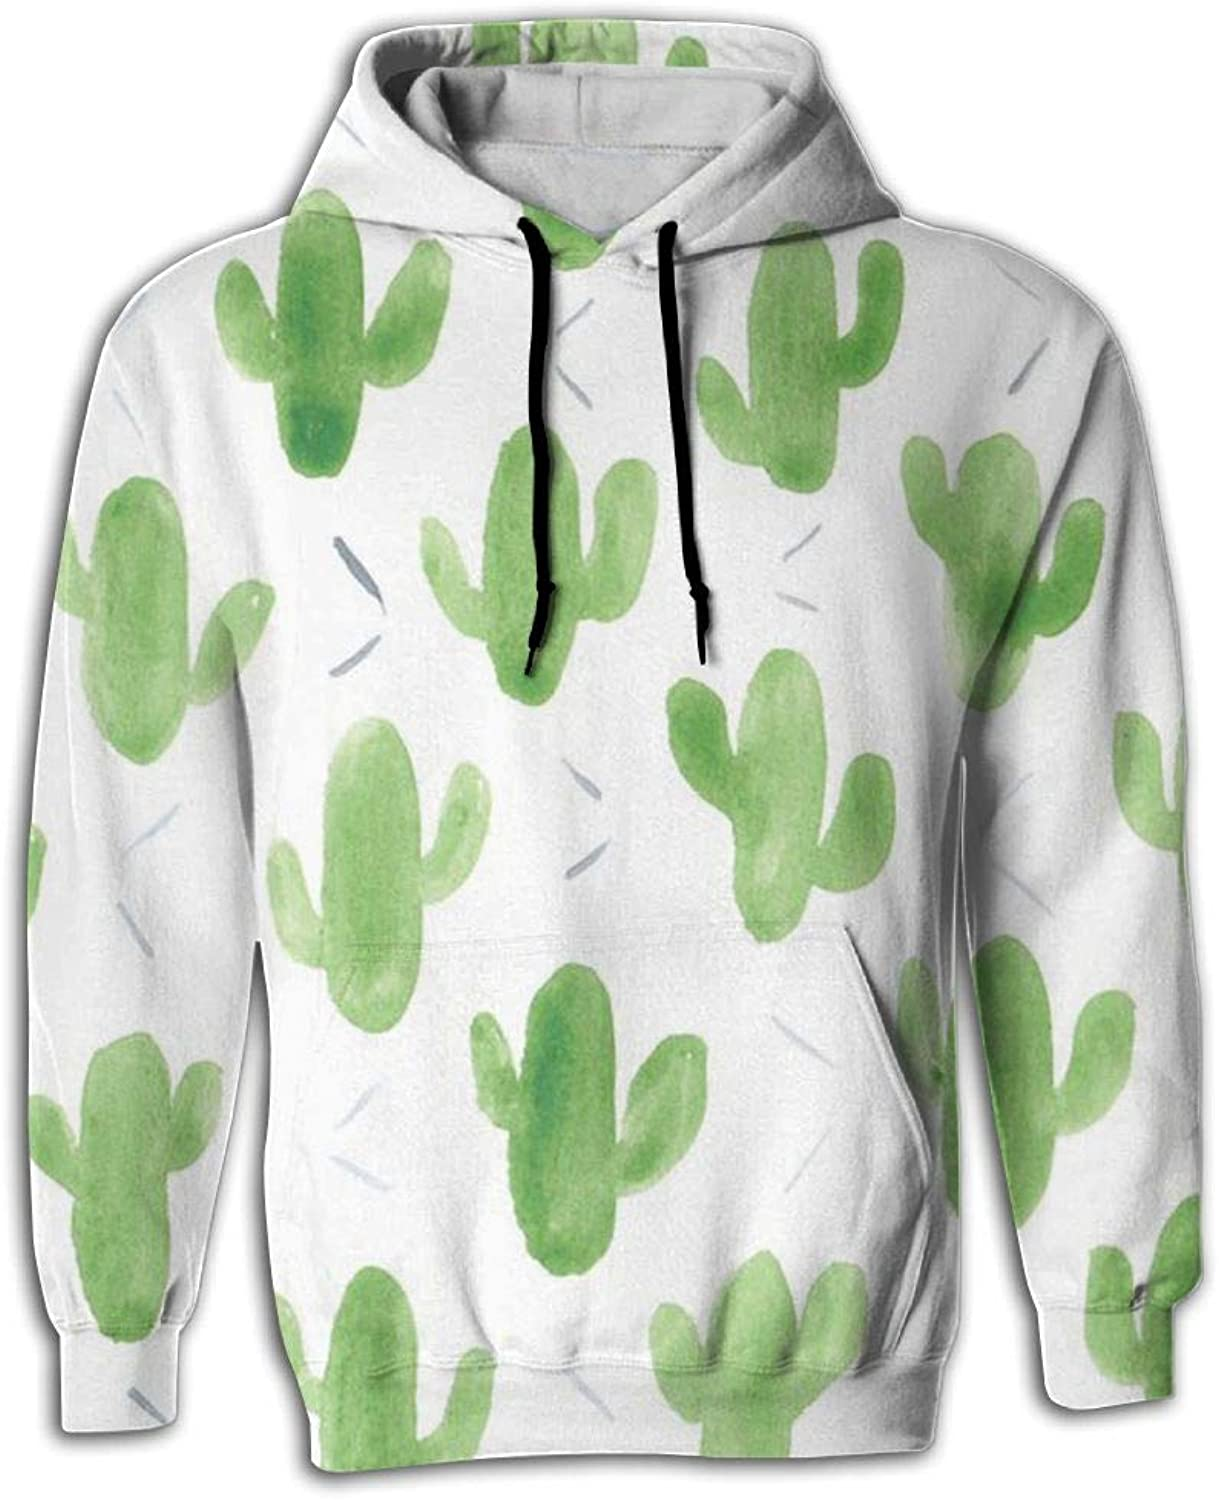 Unisex 3D Fun Print Sweaters With Pockets Hoodie Green Cactus Hot Sales 50% Off Autumn Casual Fashion Hip Hop Sports Hoodie